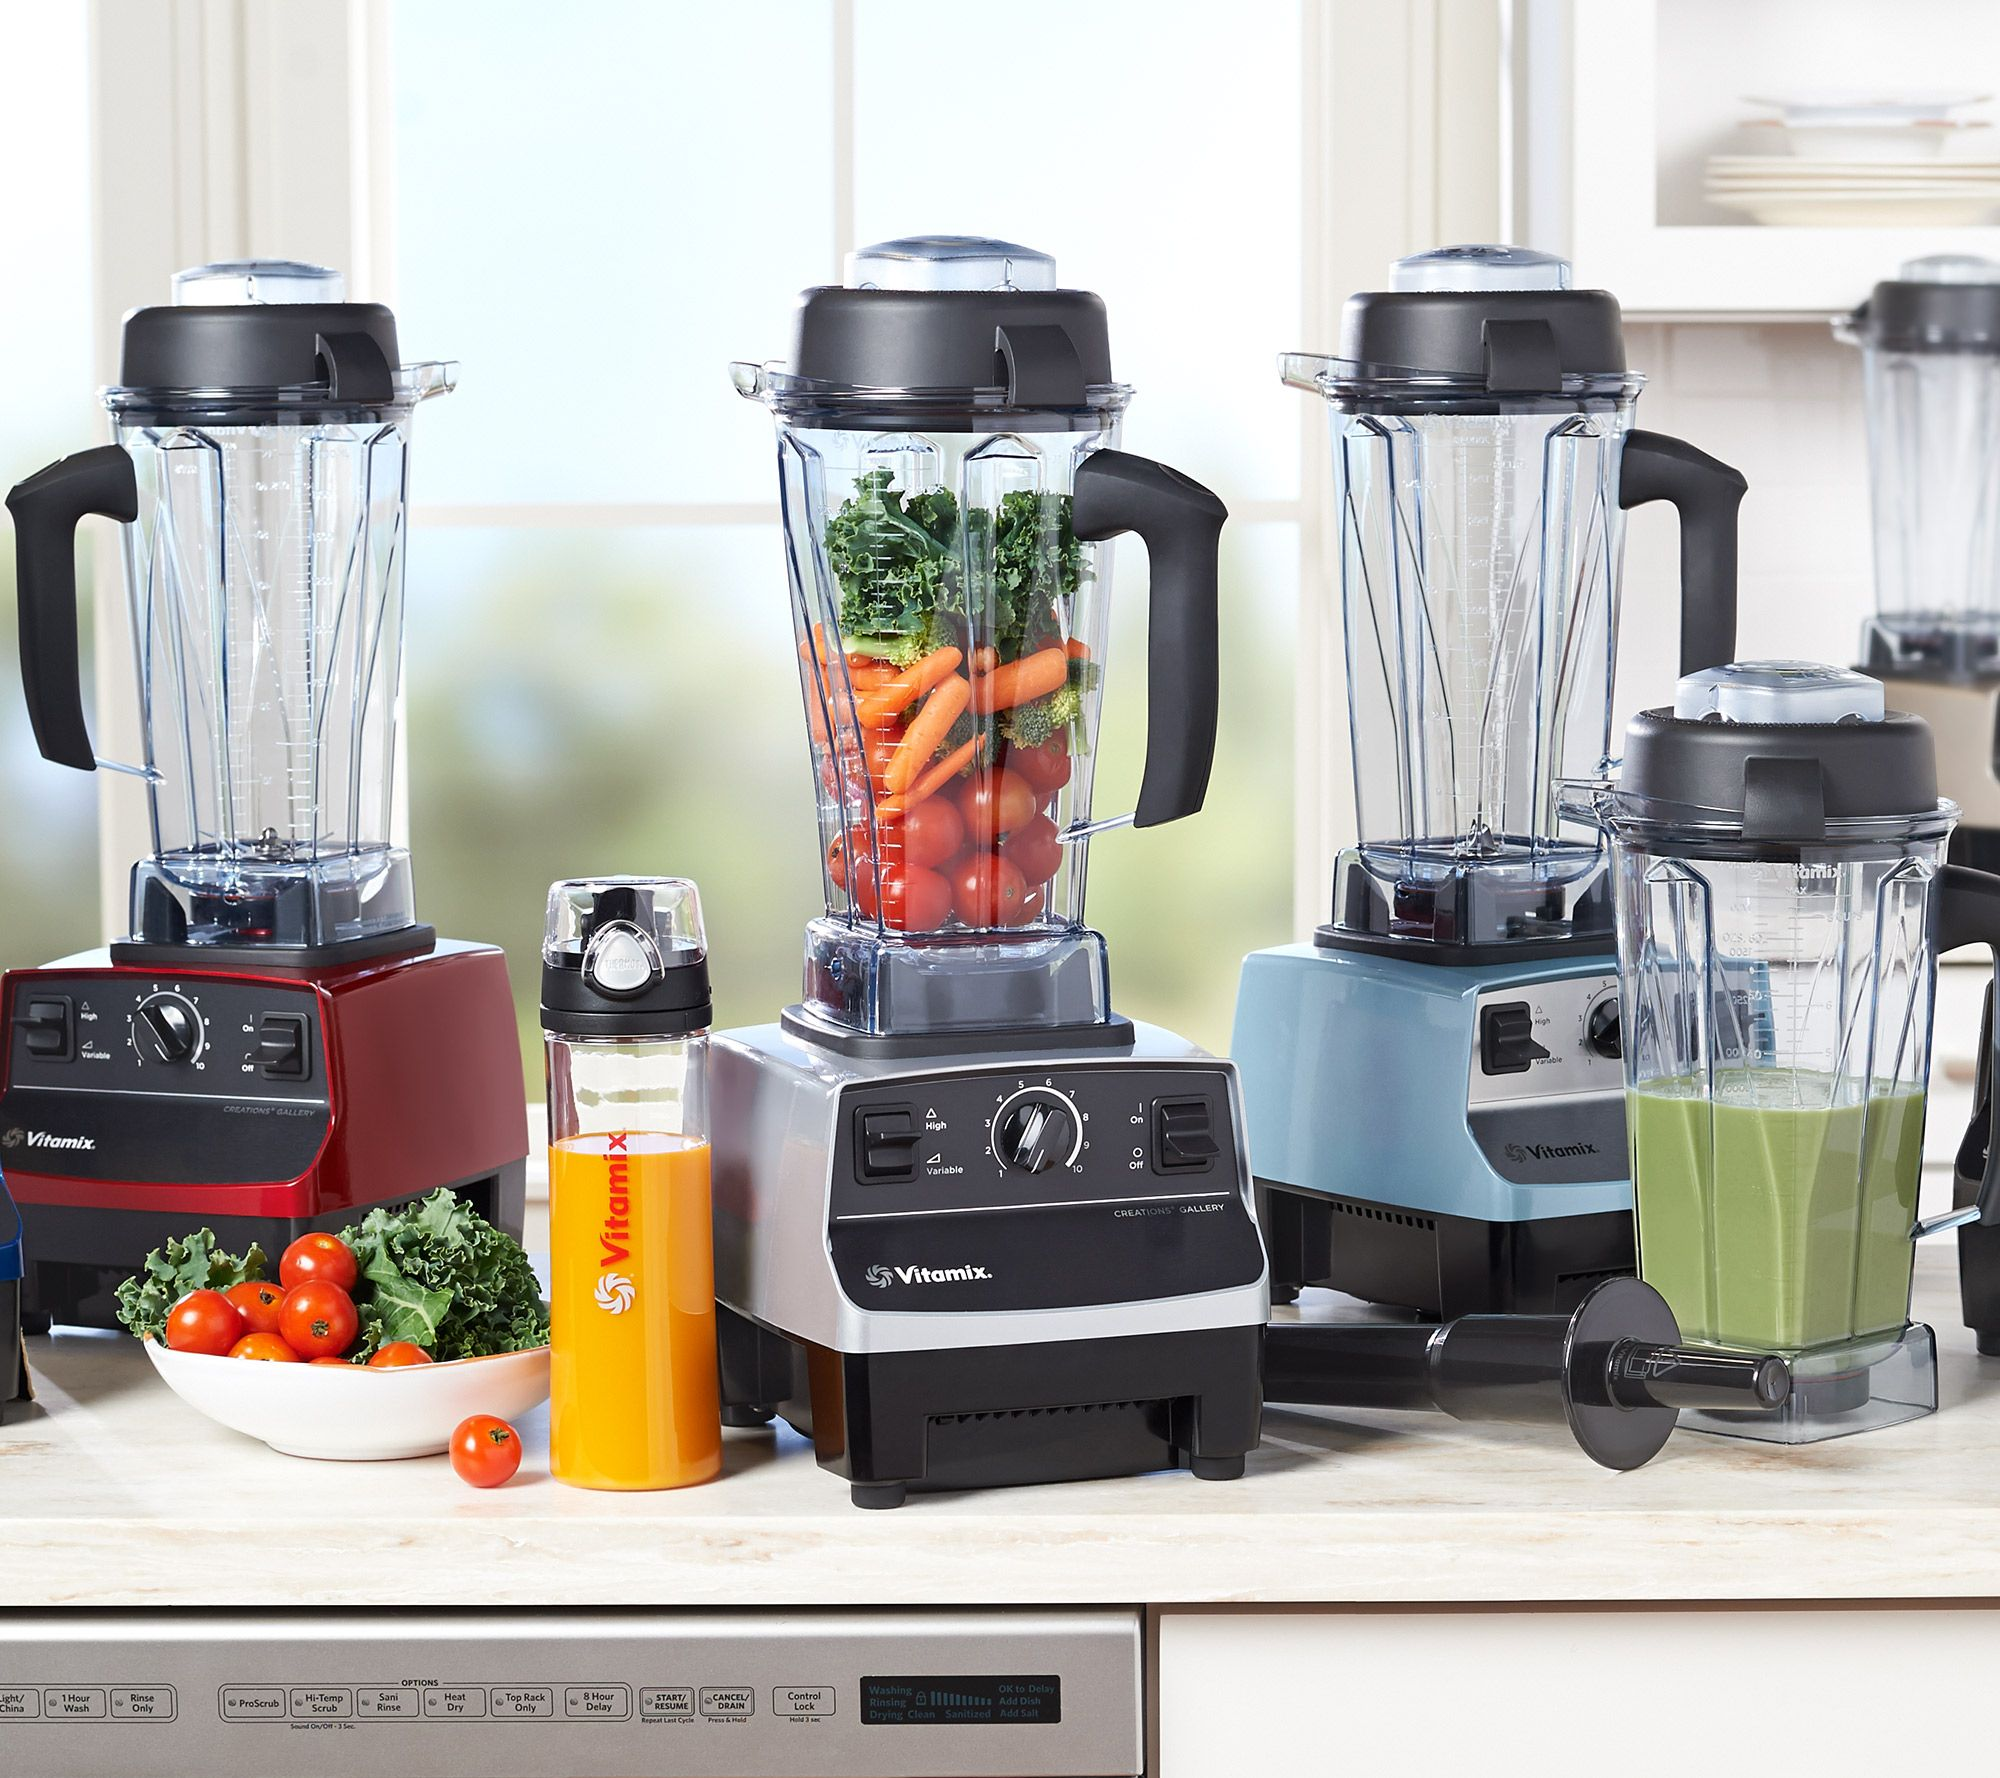 vitamix creations gallery 64 oz variable speed blender page 1 u2014 qvccom - Vitamix Blenders